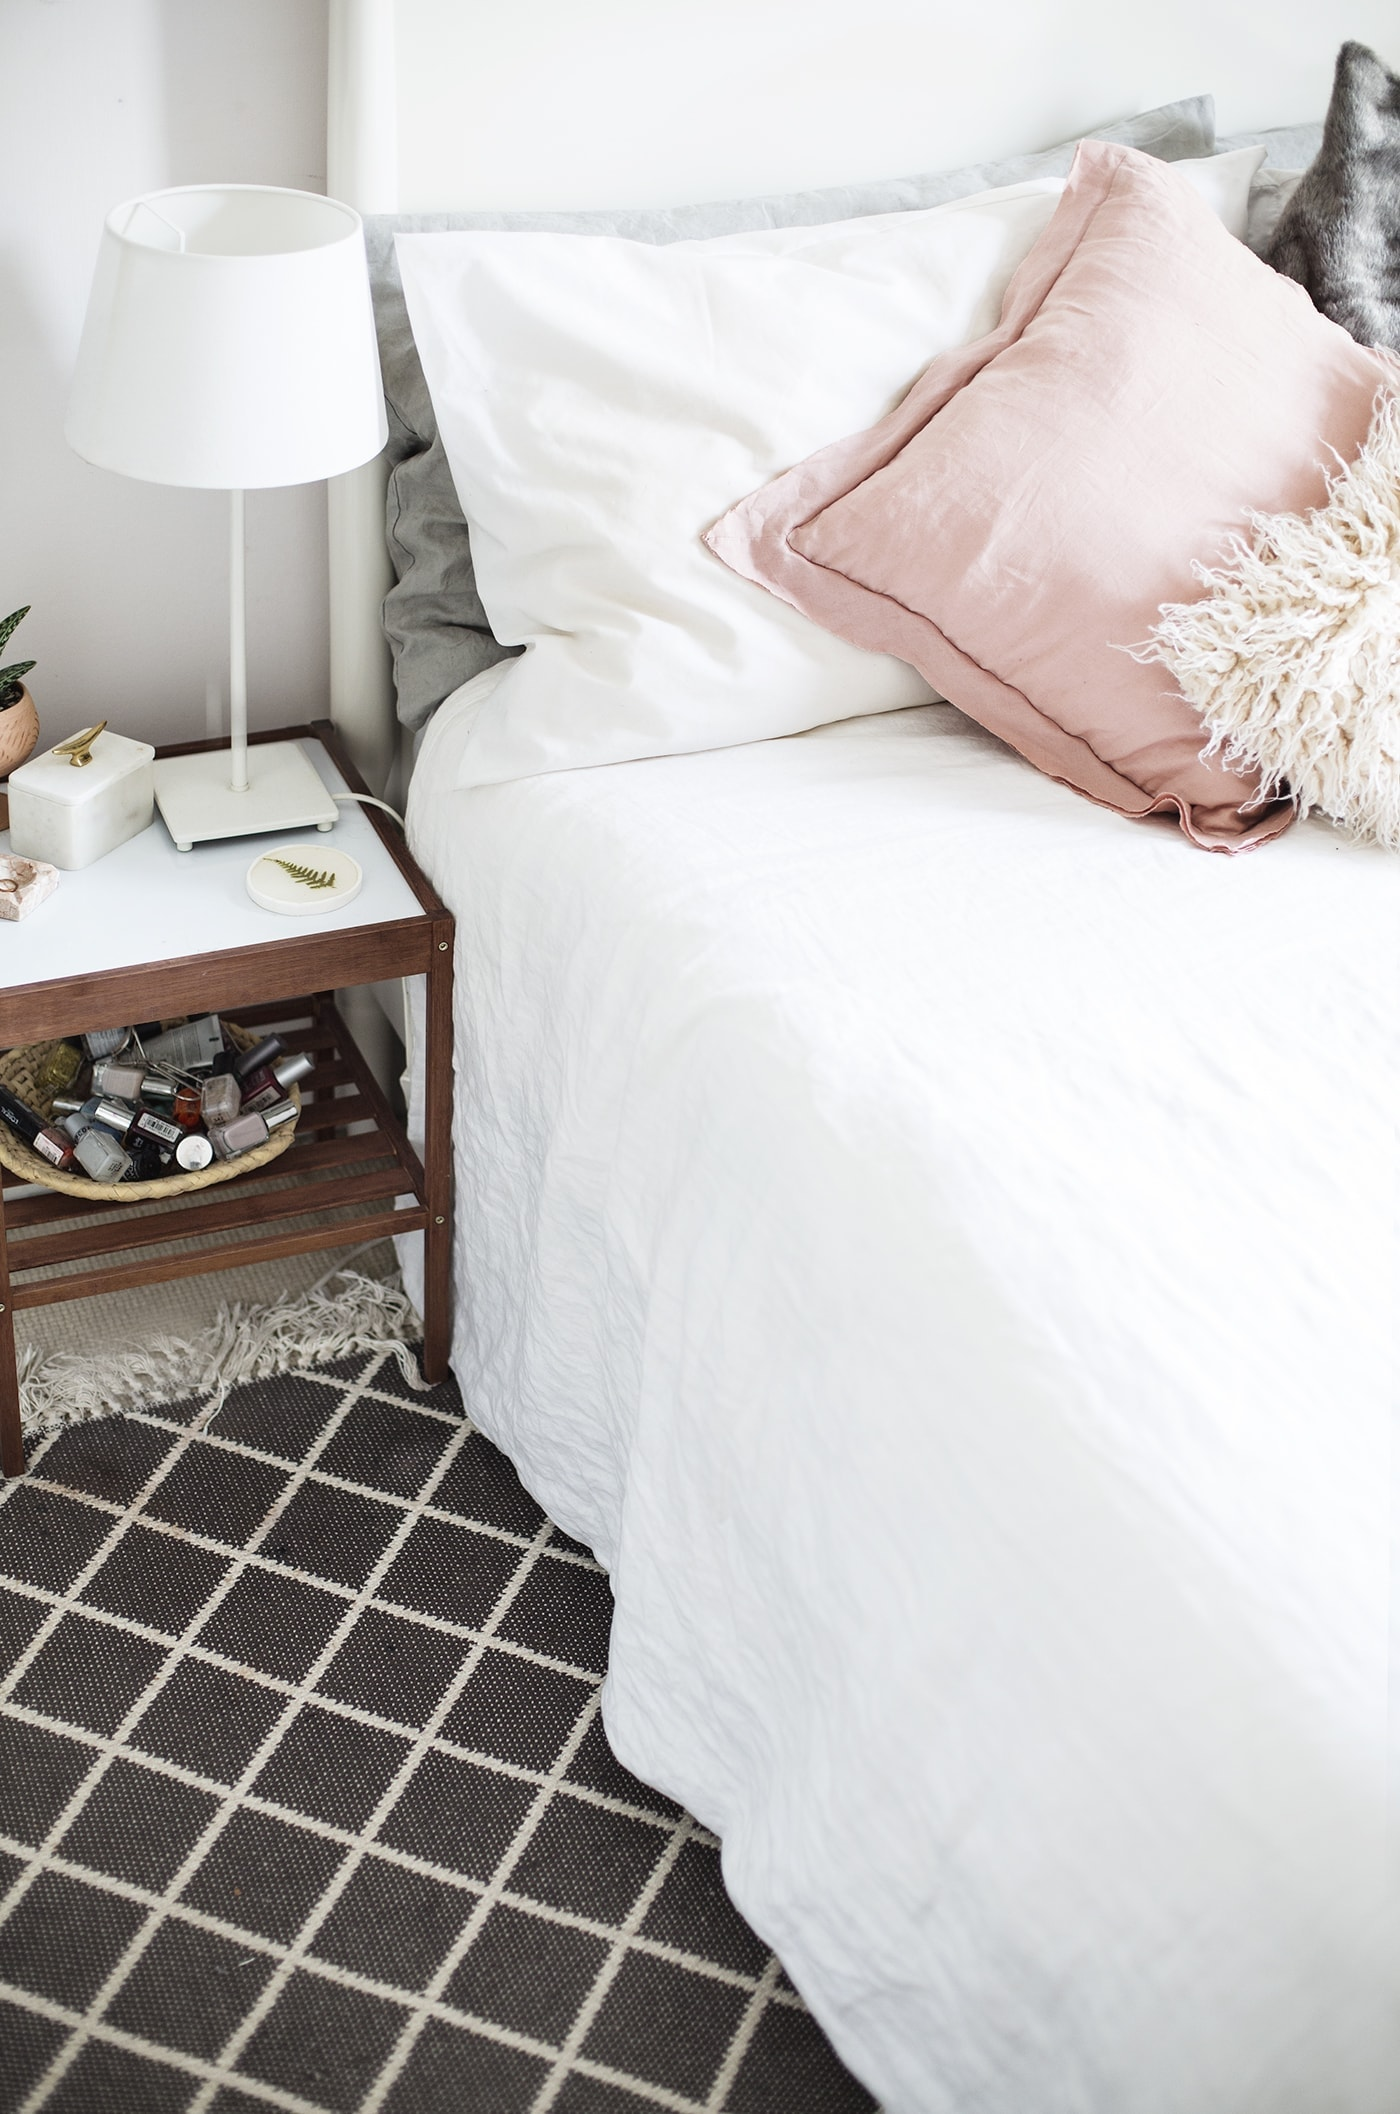 rugs in the home | carpetright | diamond rug in the bedroom